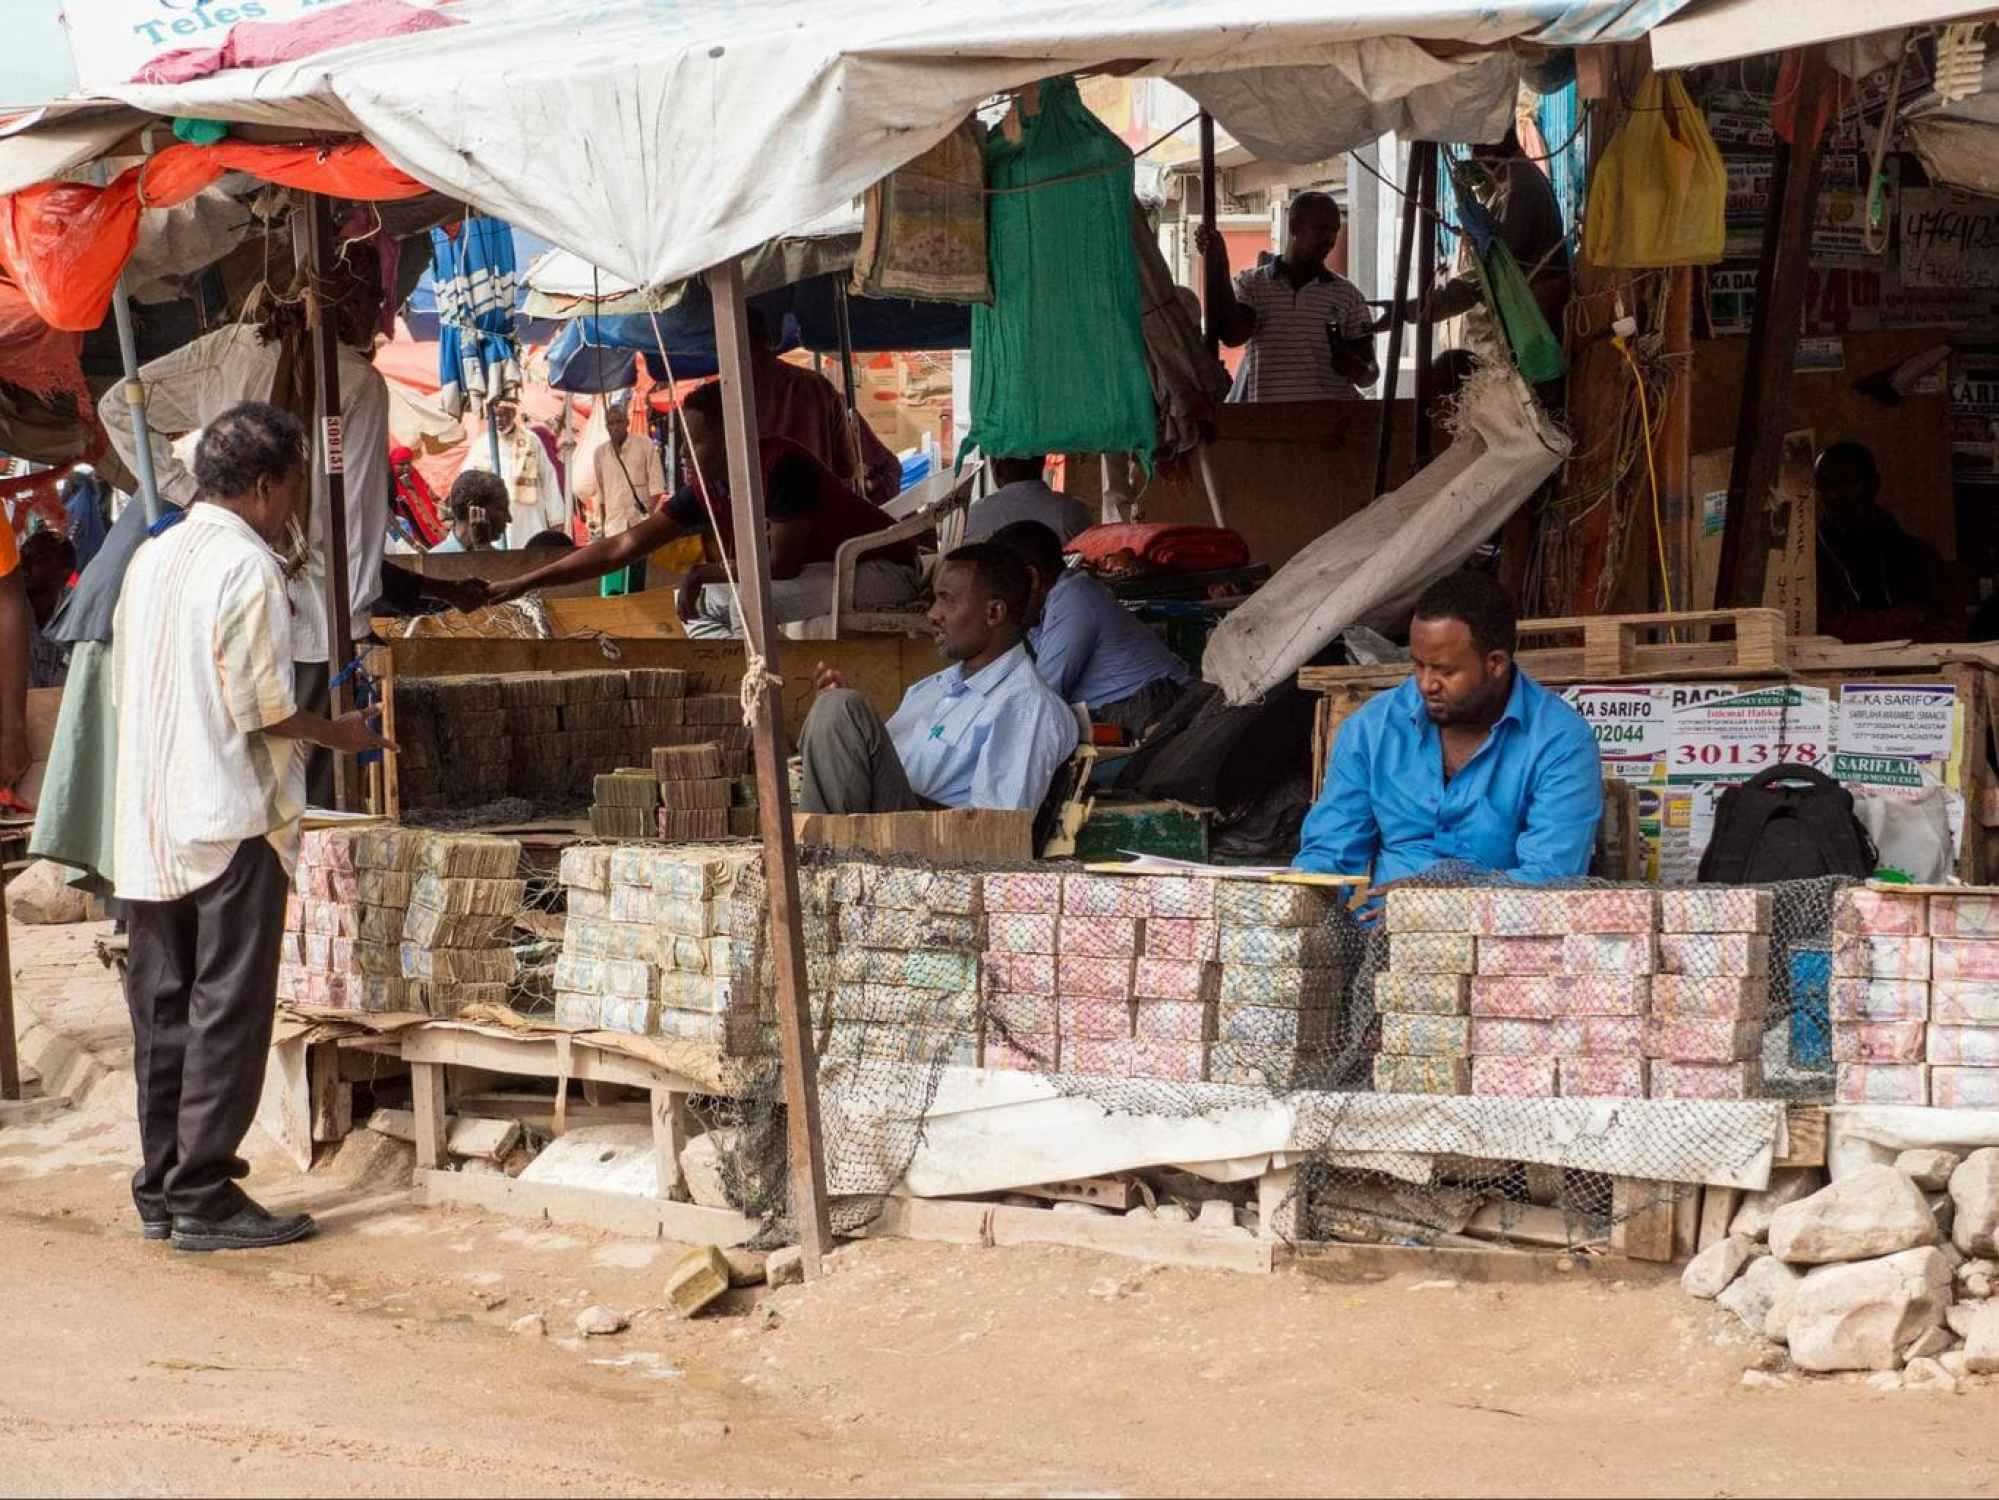 Money changers in the street of Hargeisa Central Market